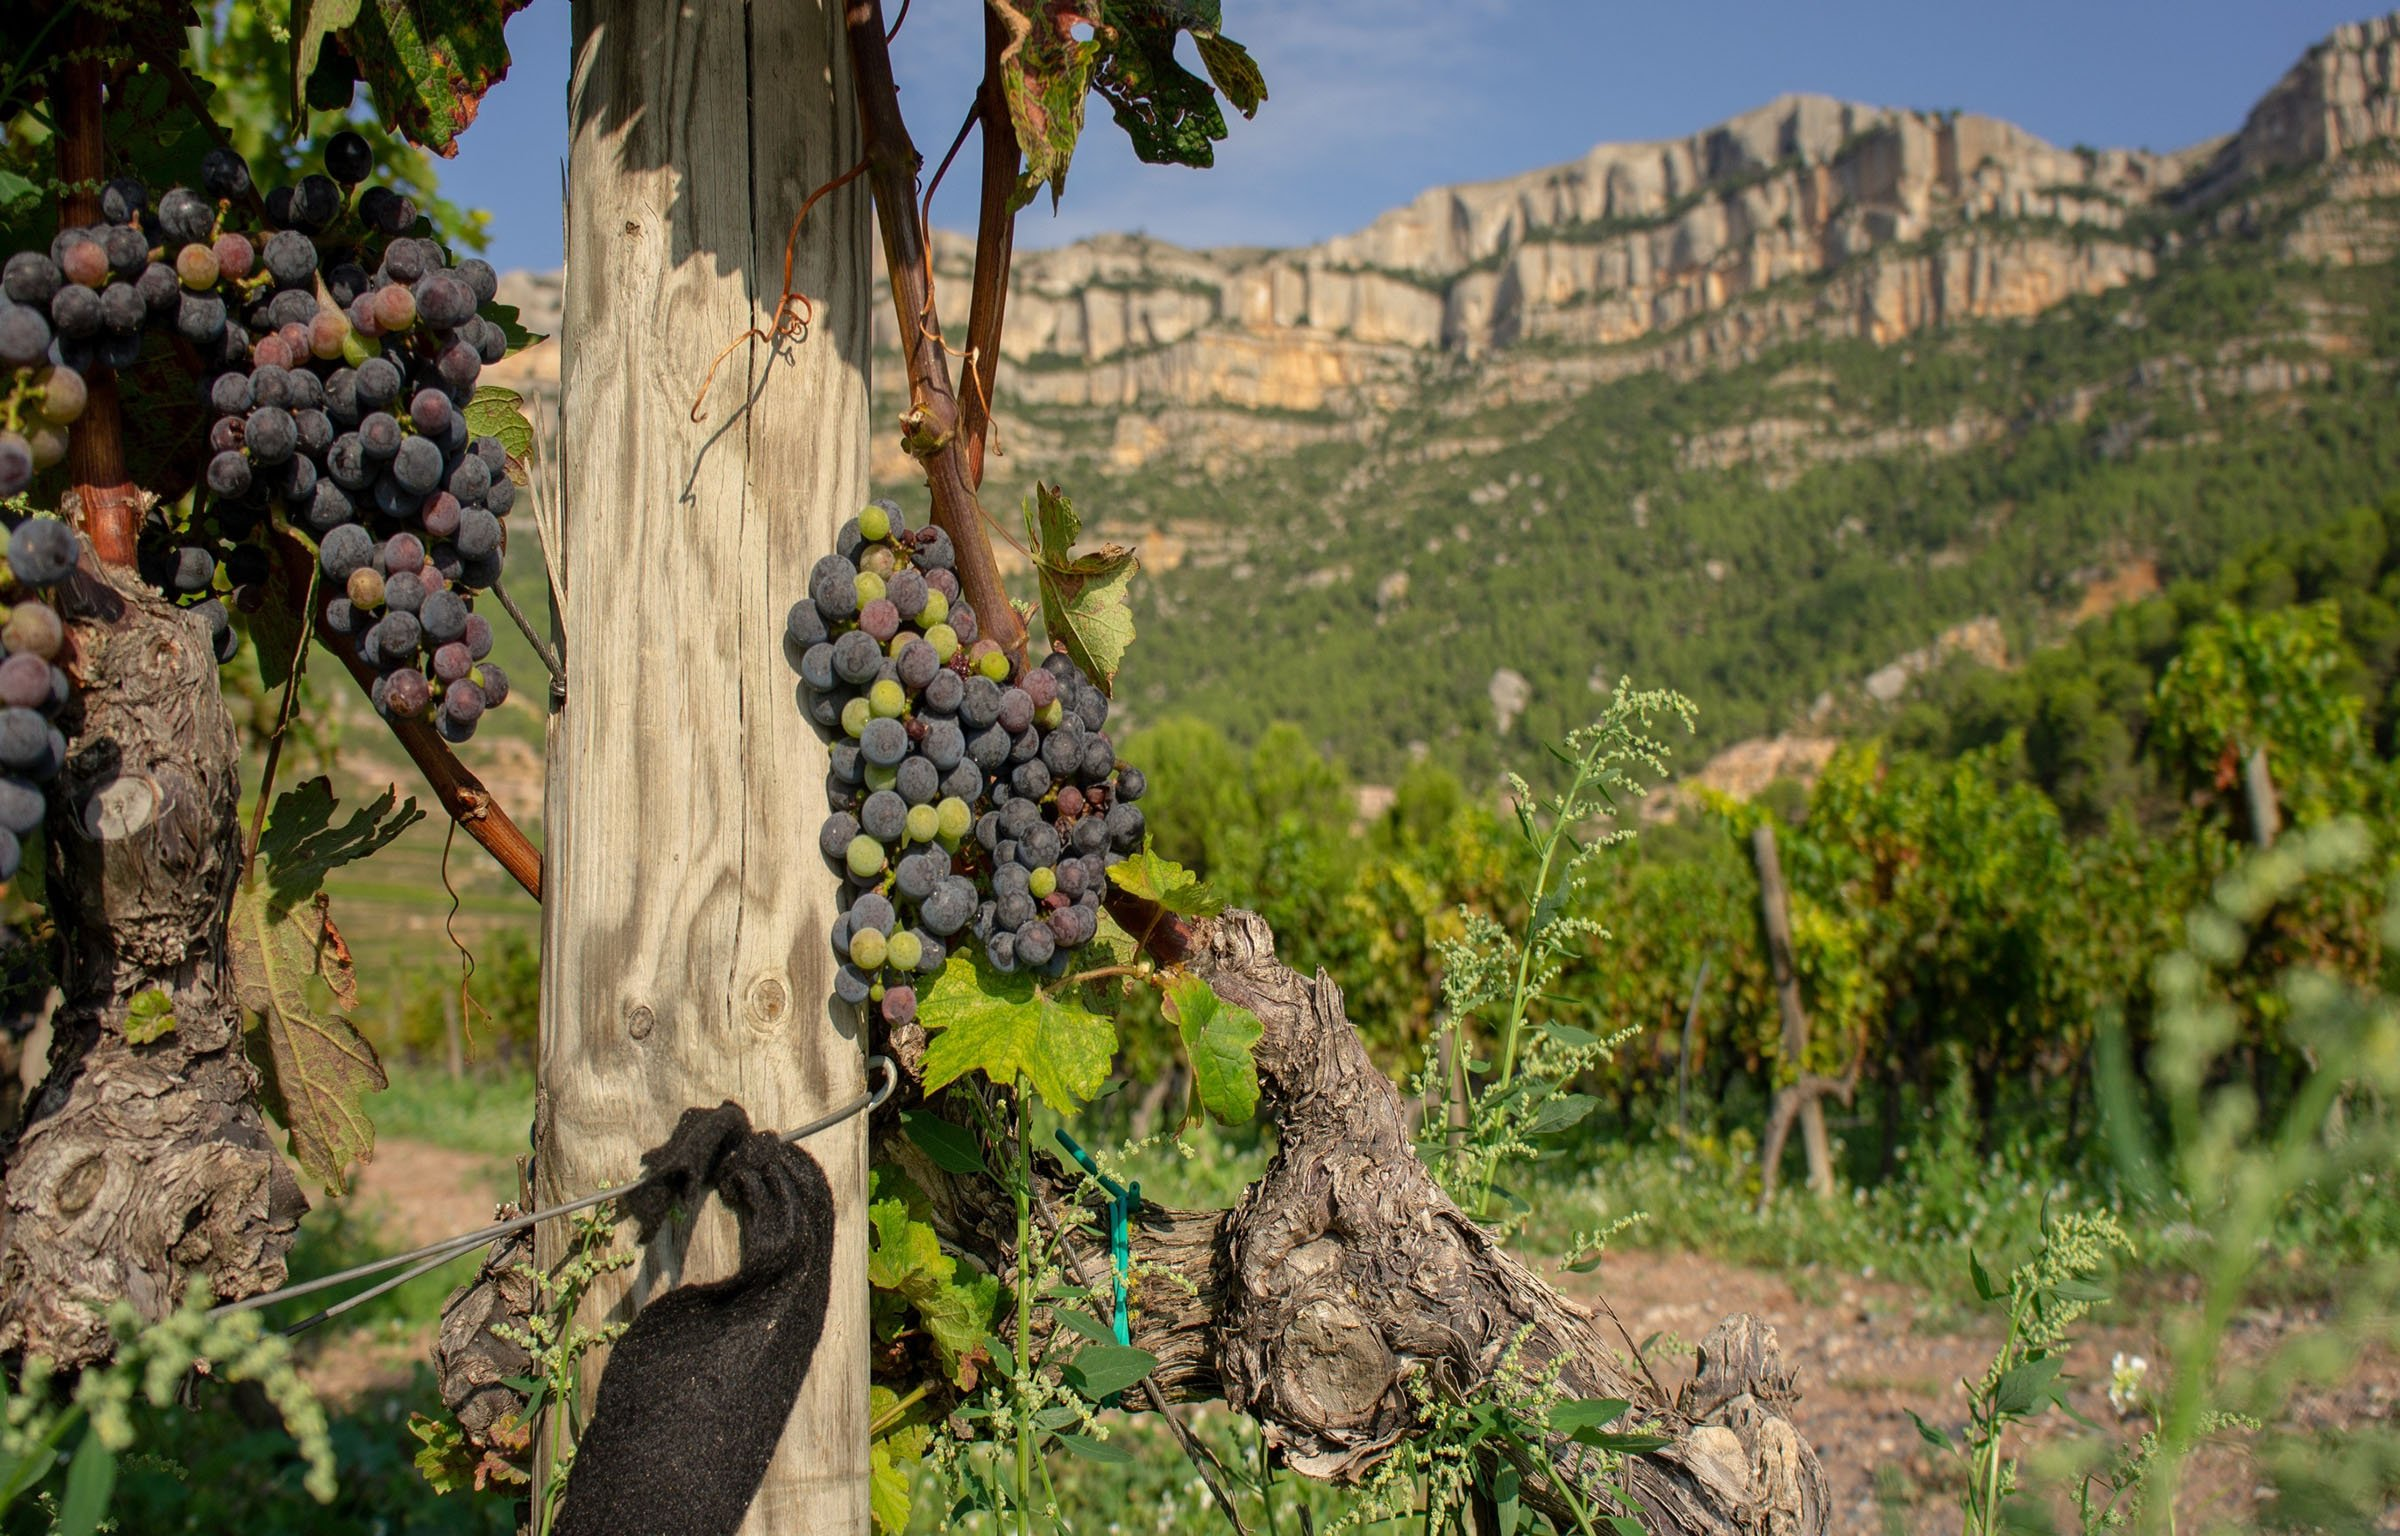 Grapes and vines in Priorate Spain with Montsant Mountains